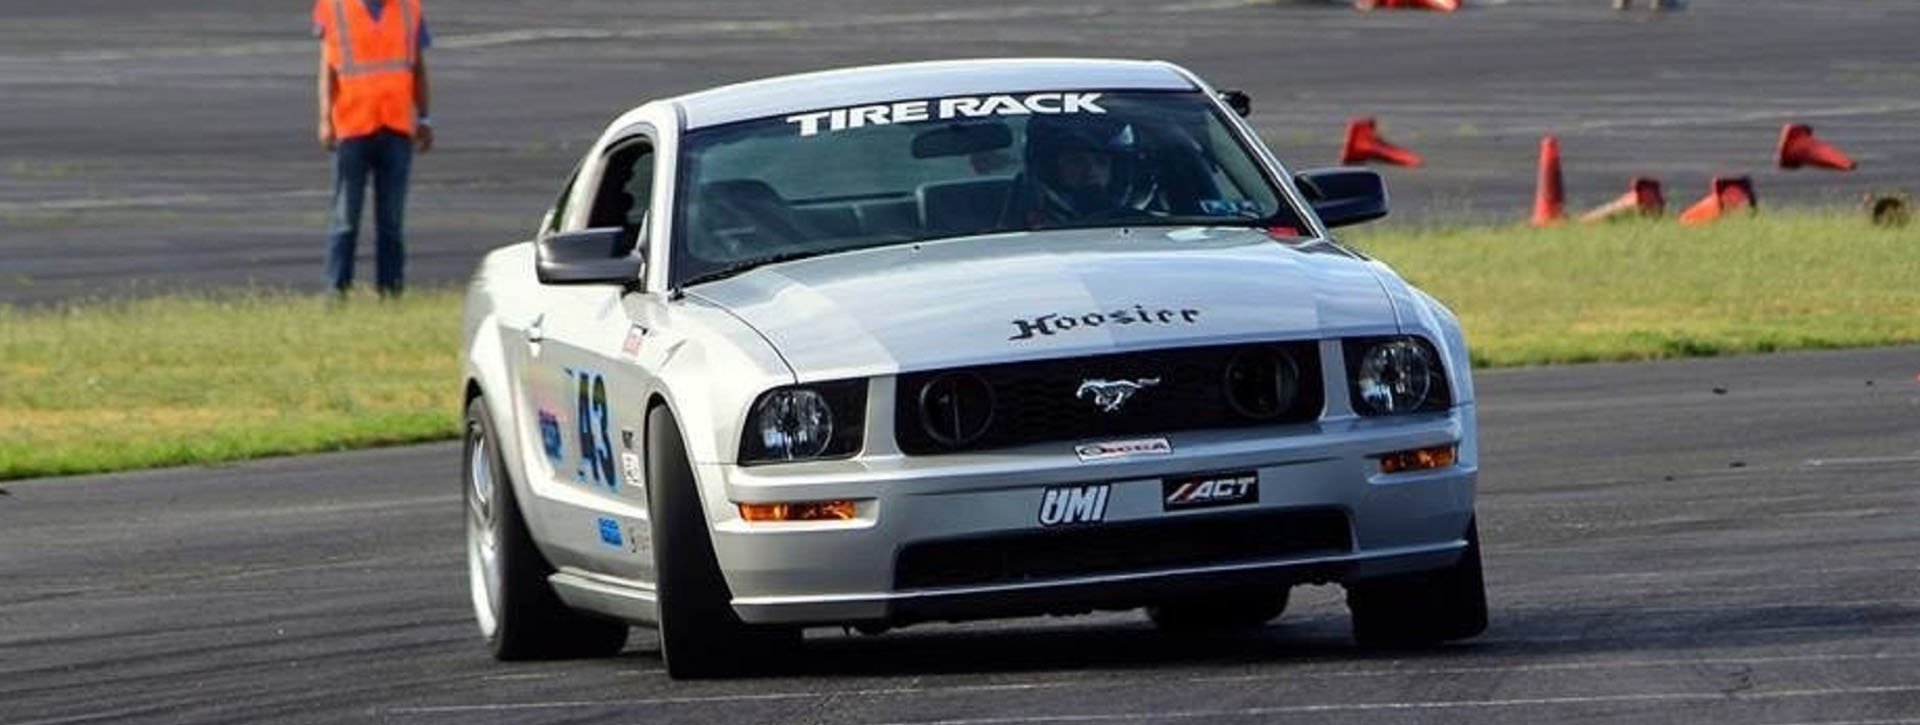 <p>Name: Jason Felty From: Shermansdale, PA Runs: SCCA AutoCross and Motocross Drives: 2006 Mustang GT in CP (thanks to the Latshaws), 2002 Lexus IS300 in DSP, and coming soon a 2006 Corvette Z06 in SSM Member Since: 2009 If you attended the 2017 Awards Banquet you are sure to have seen [&hellip;]</p>